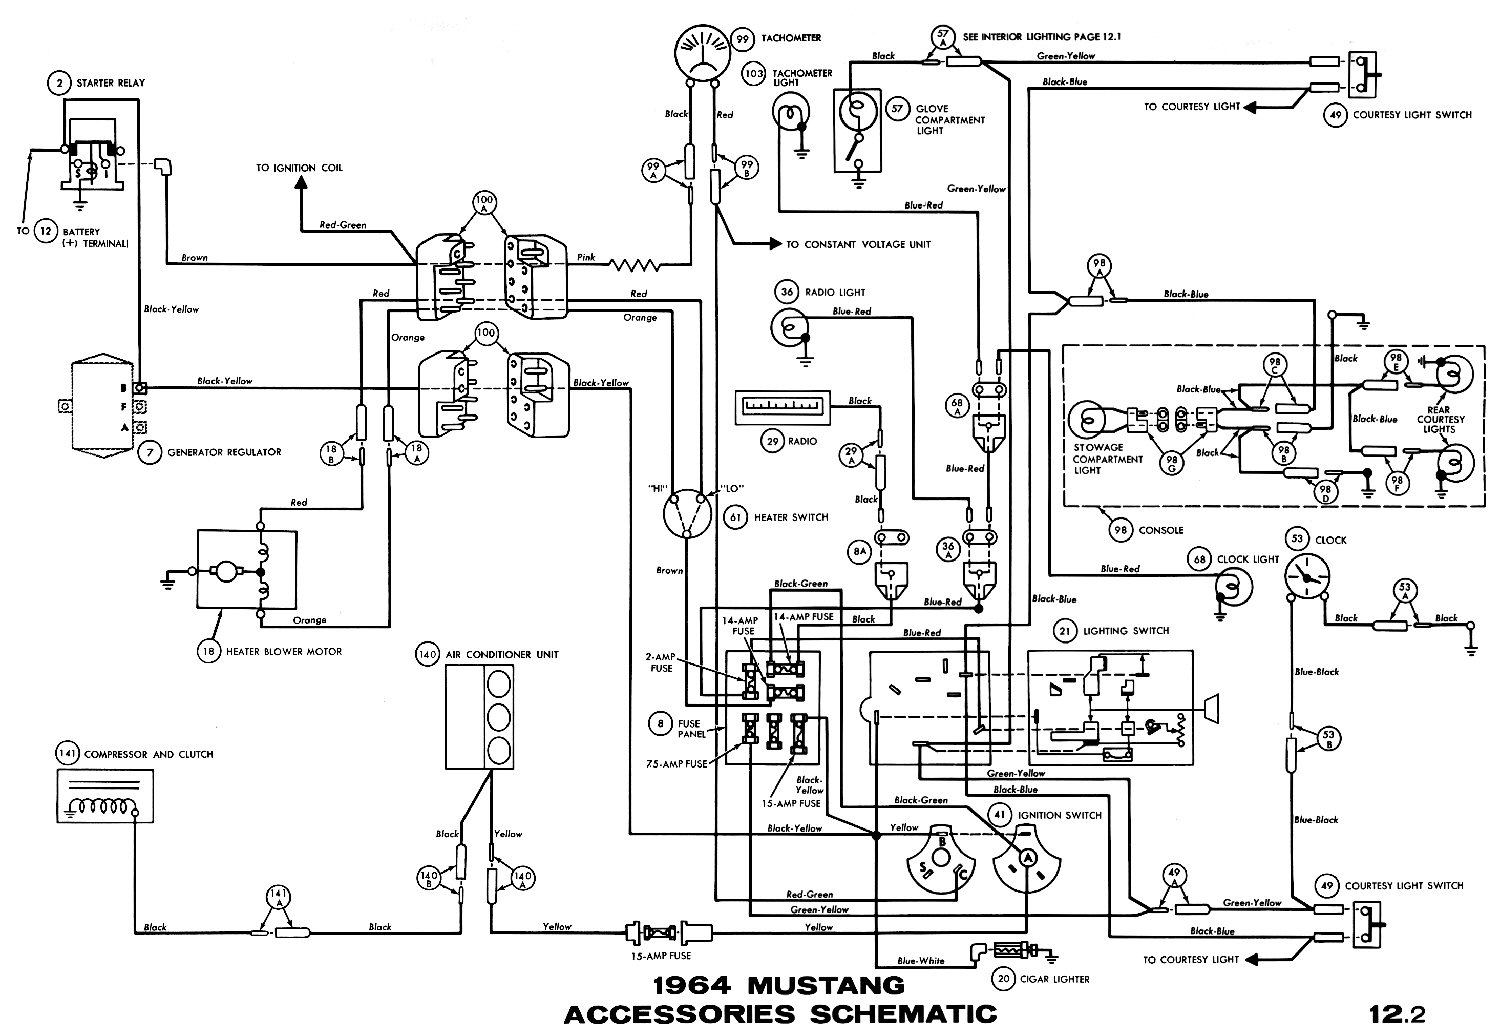 1964 mustang wiring diagrams - average joe restoration, Wiring diagram